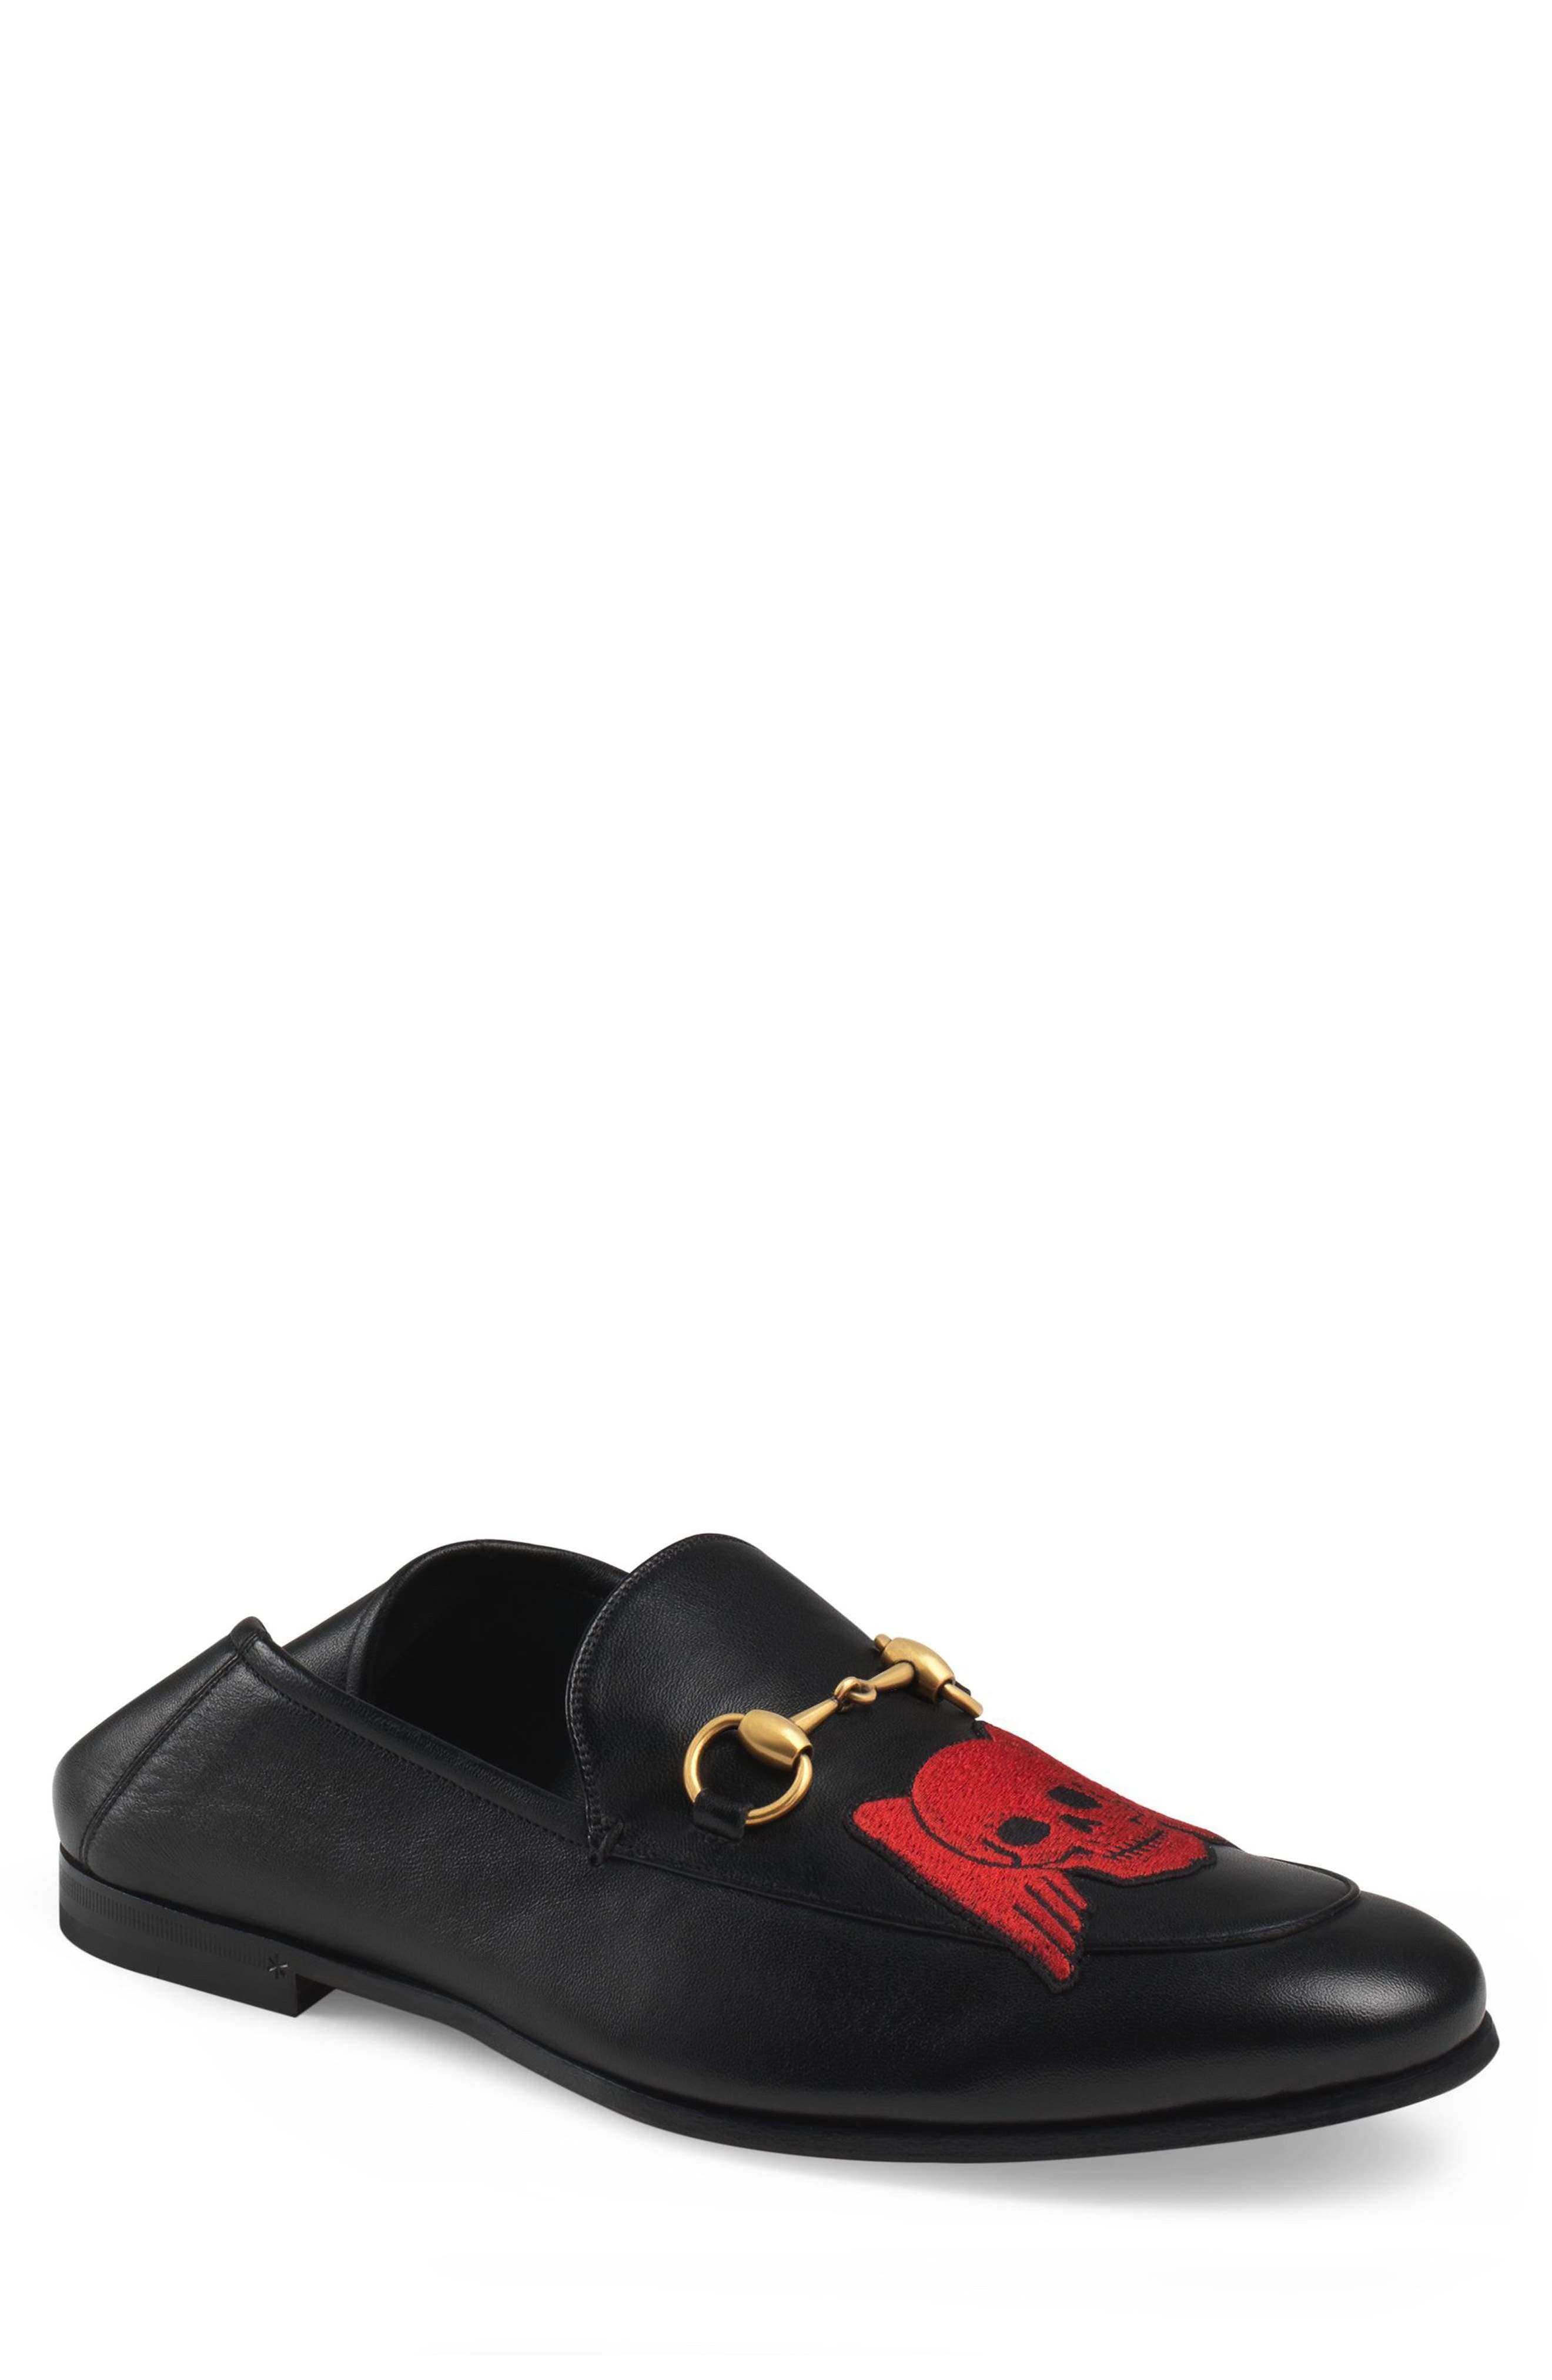 Brixton Embroidered Loafer,                             Main thumbnail 1, color,                             BLACK/ BLACK